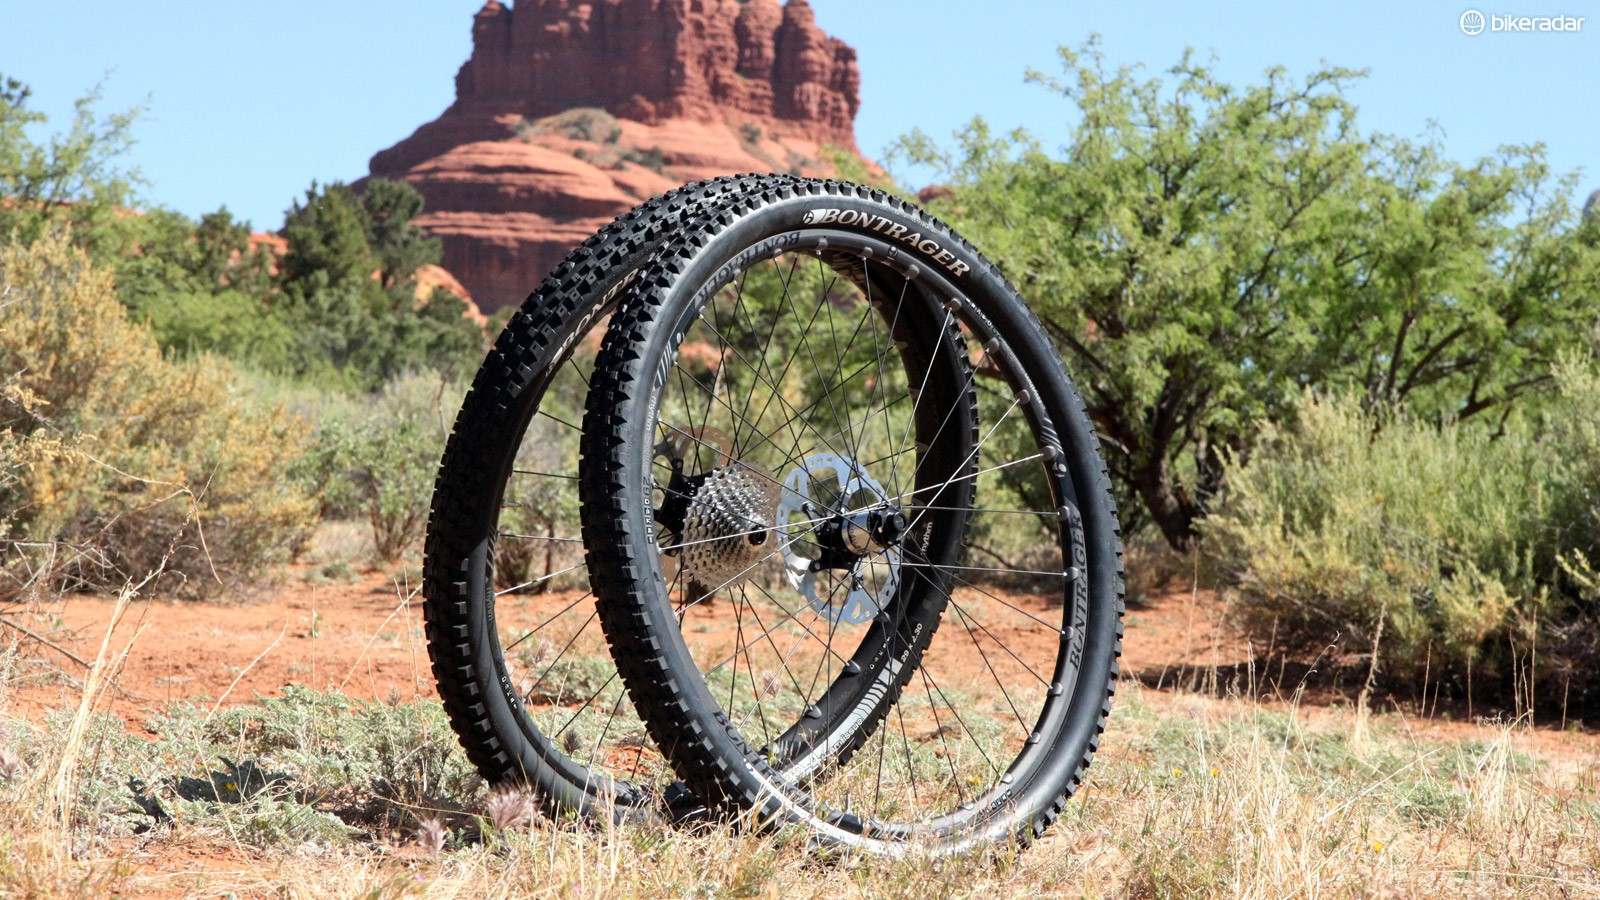 Choosing your next set of mountain bike wheels can be a daunting task given the range of options available. This guide should help you find the best ones for your needs - and your budget